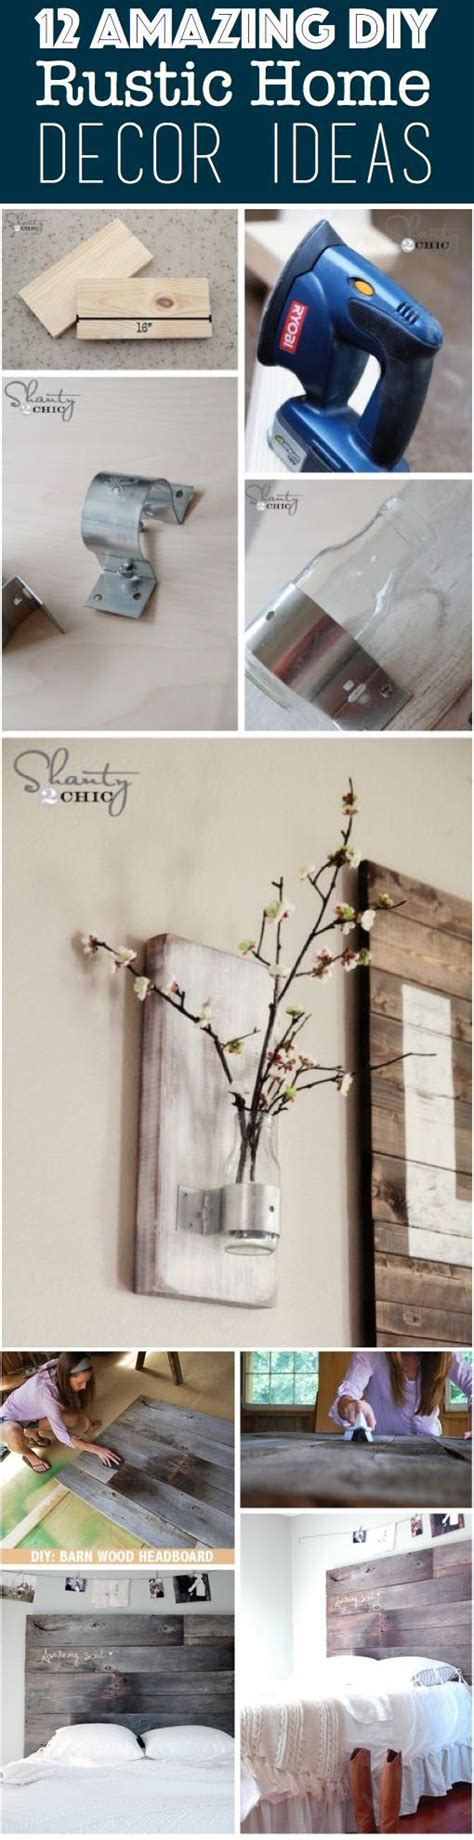 diy rustic home decor ideas 12 amazing diy rustic home decor ideas culture scribe